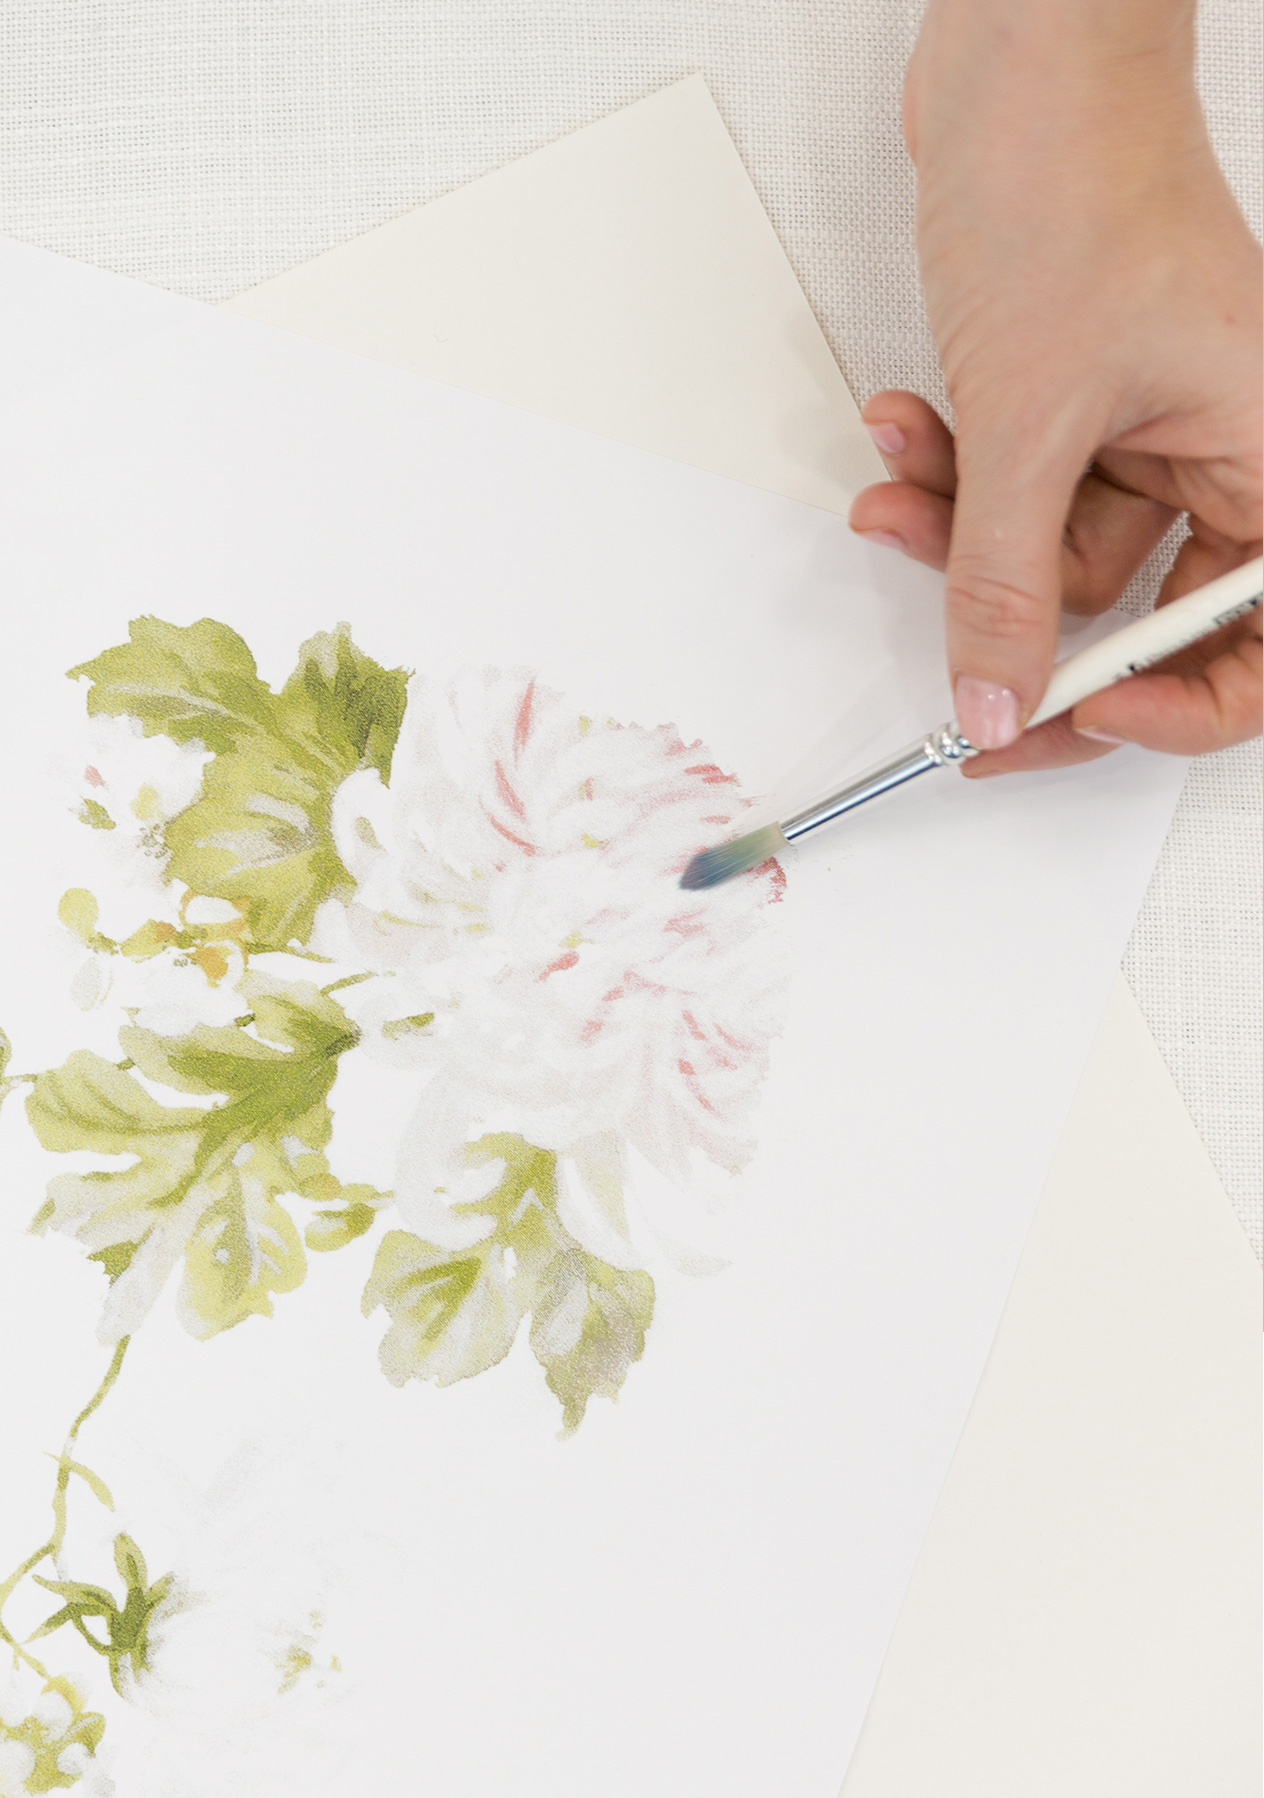 Stay creative during lockdown, an image of a watercolour floral